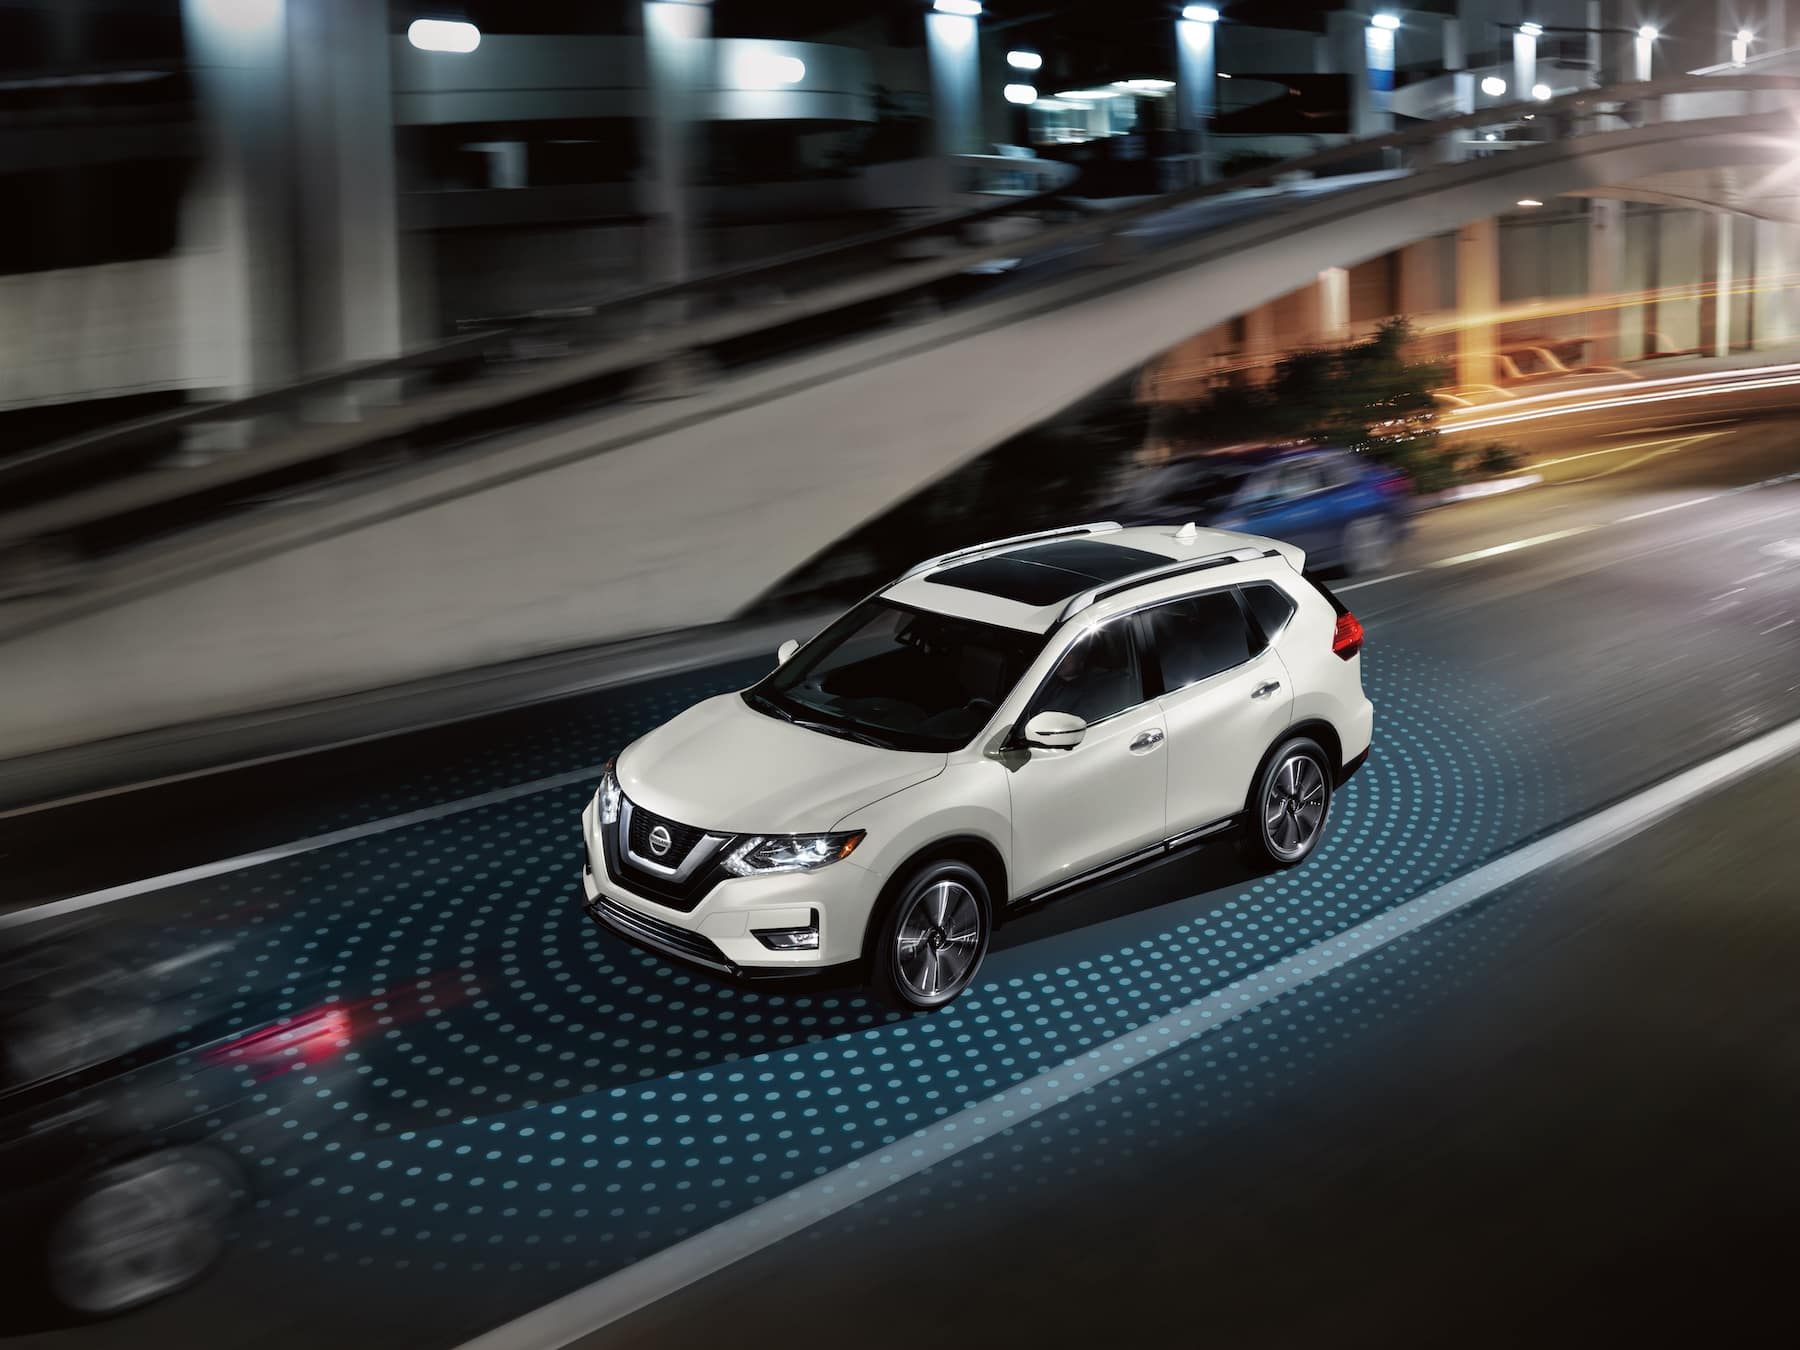 The 2020 Rogue model features at Hanover Nissan in Hanover | white 2020 rogue safety sensor